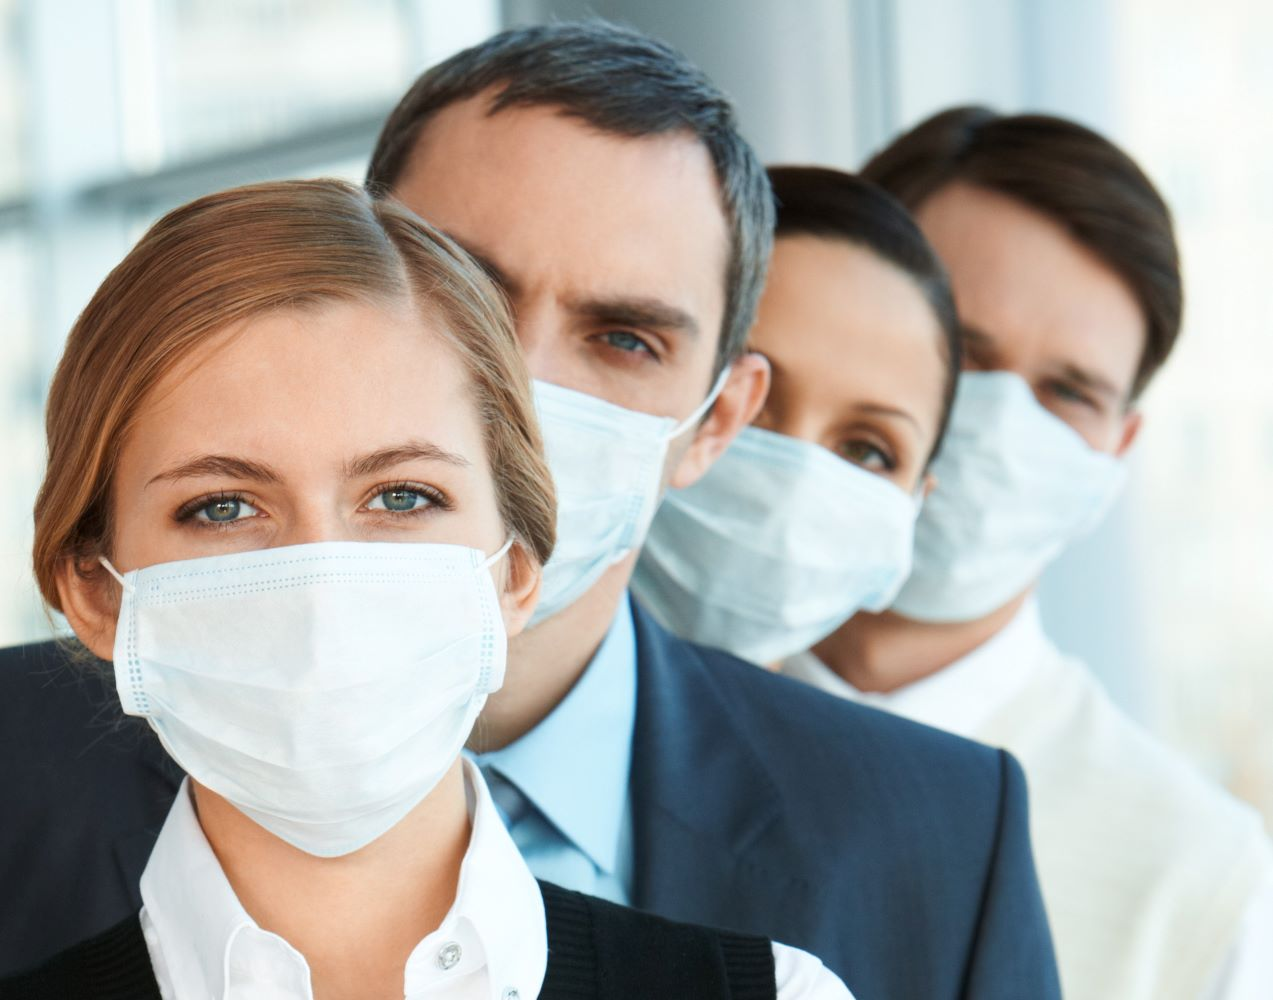 3 in 4 employers to review Employee Benefits offerings as a direct result of the COVID19 pandemic